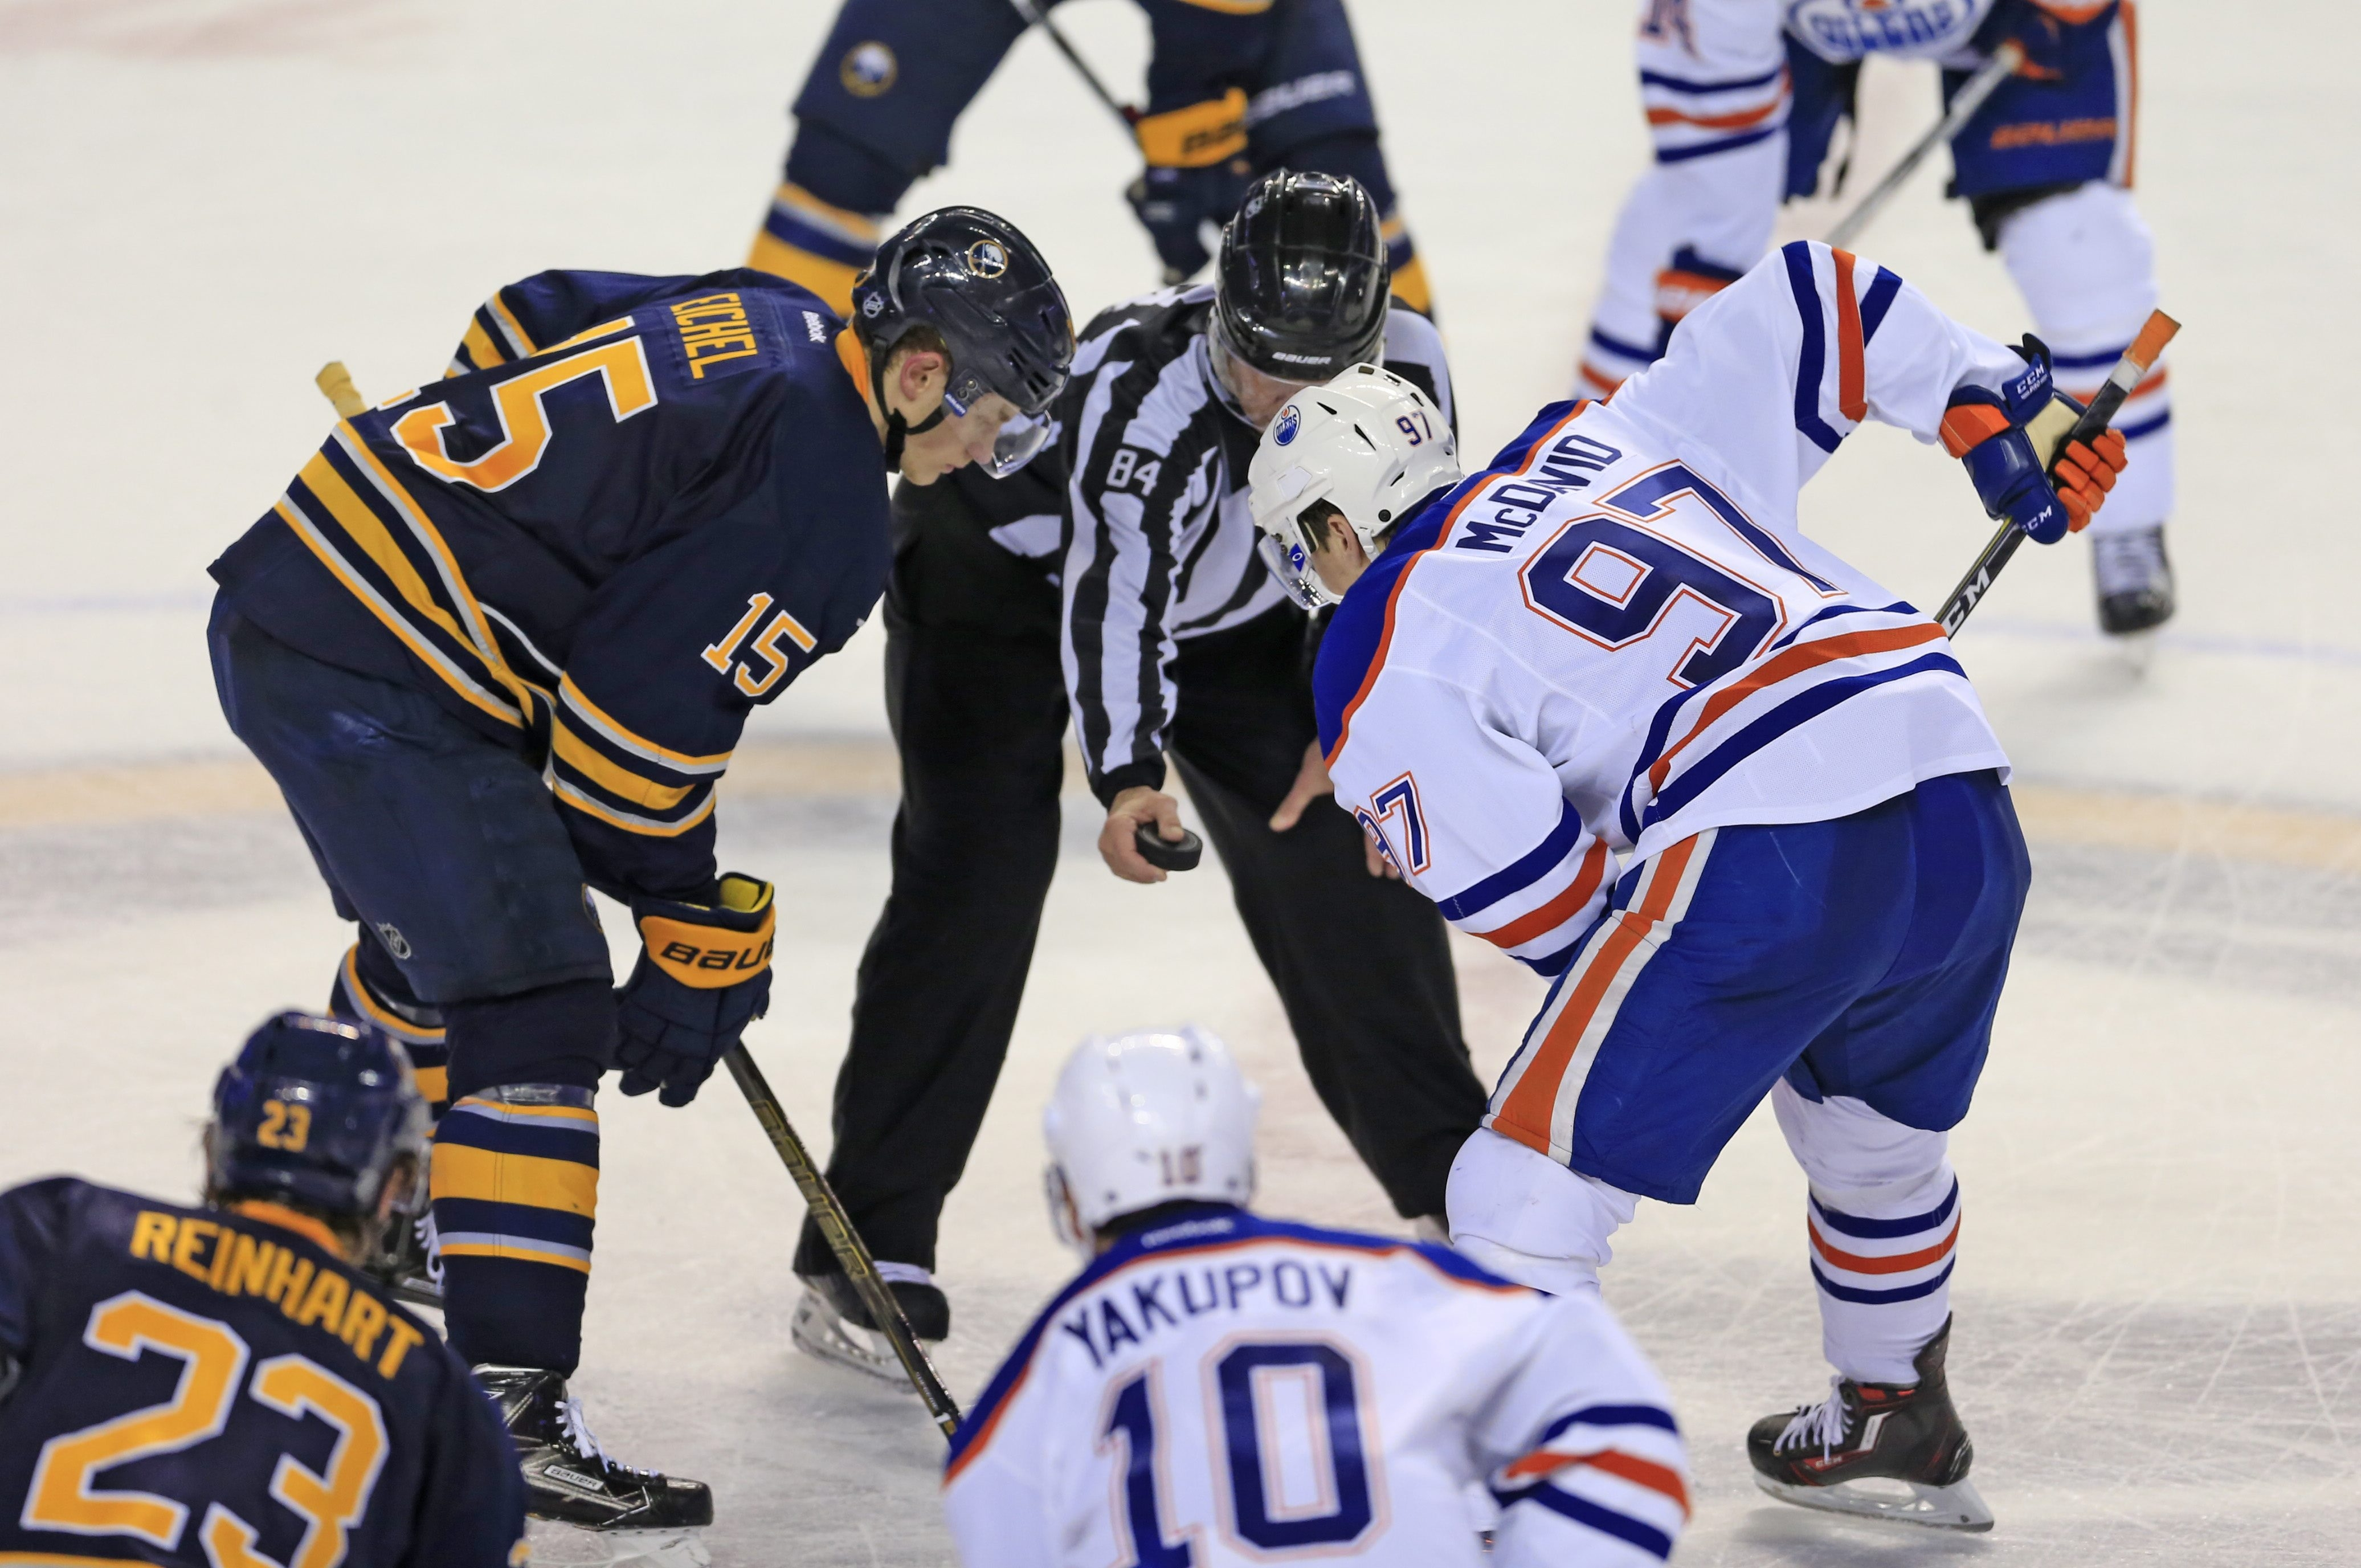 The Edmonton Oilers' Connor McDavid and Buffalo Sabres' Jack Eichel faced off  during the teams' matchup in Buffalo on March 1.